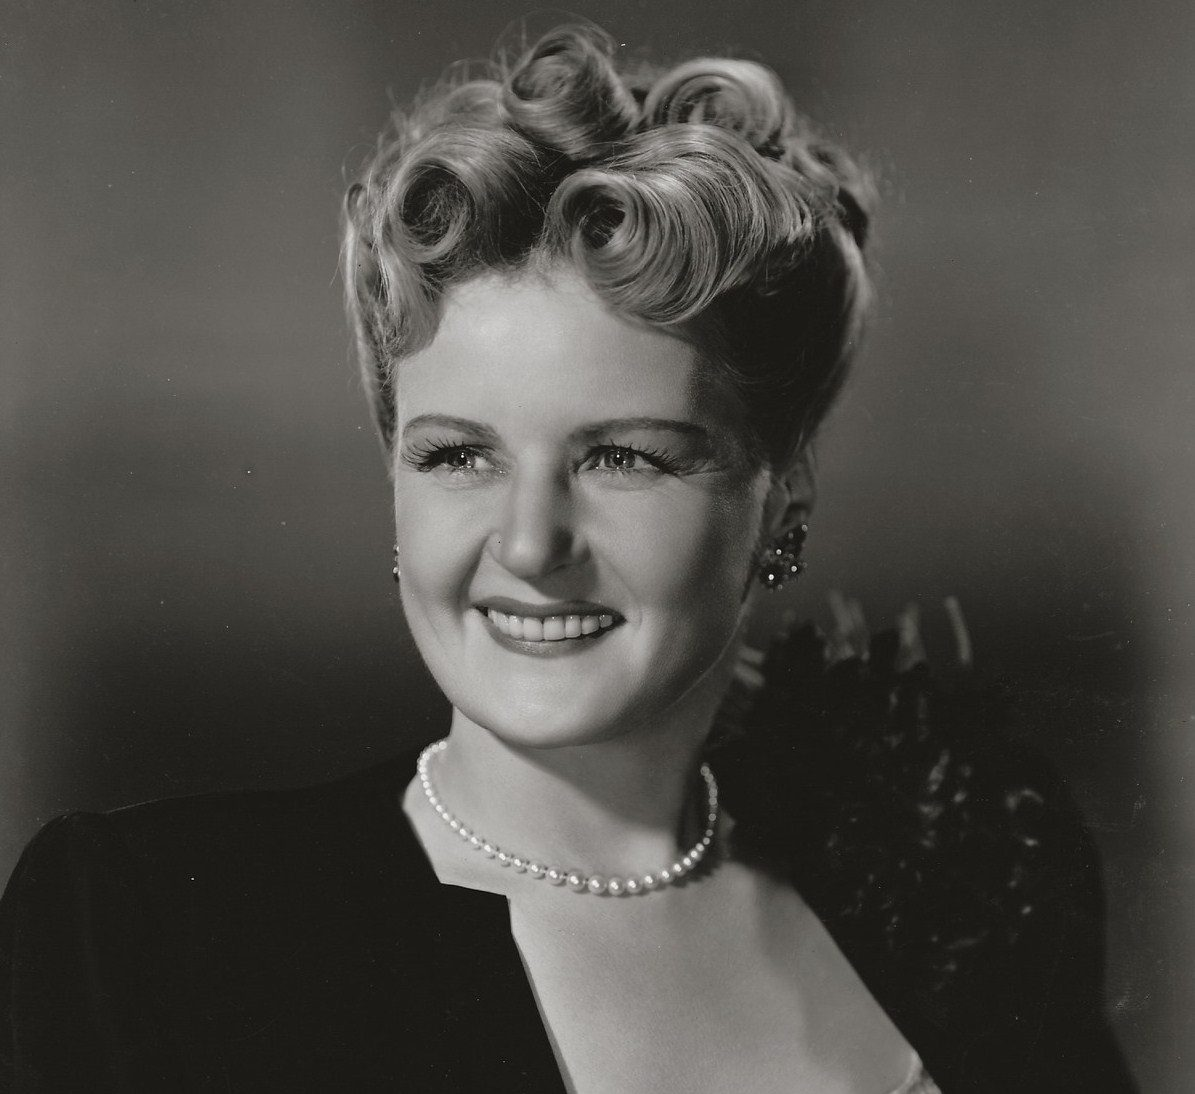 17 2 e1604925560210 20 Facts We Wrote About Murder, She Wrote